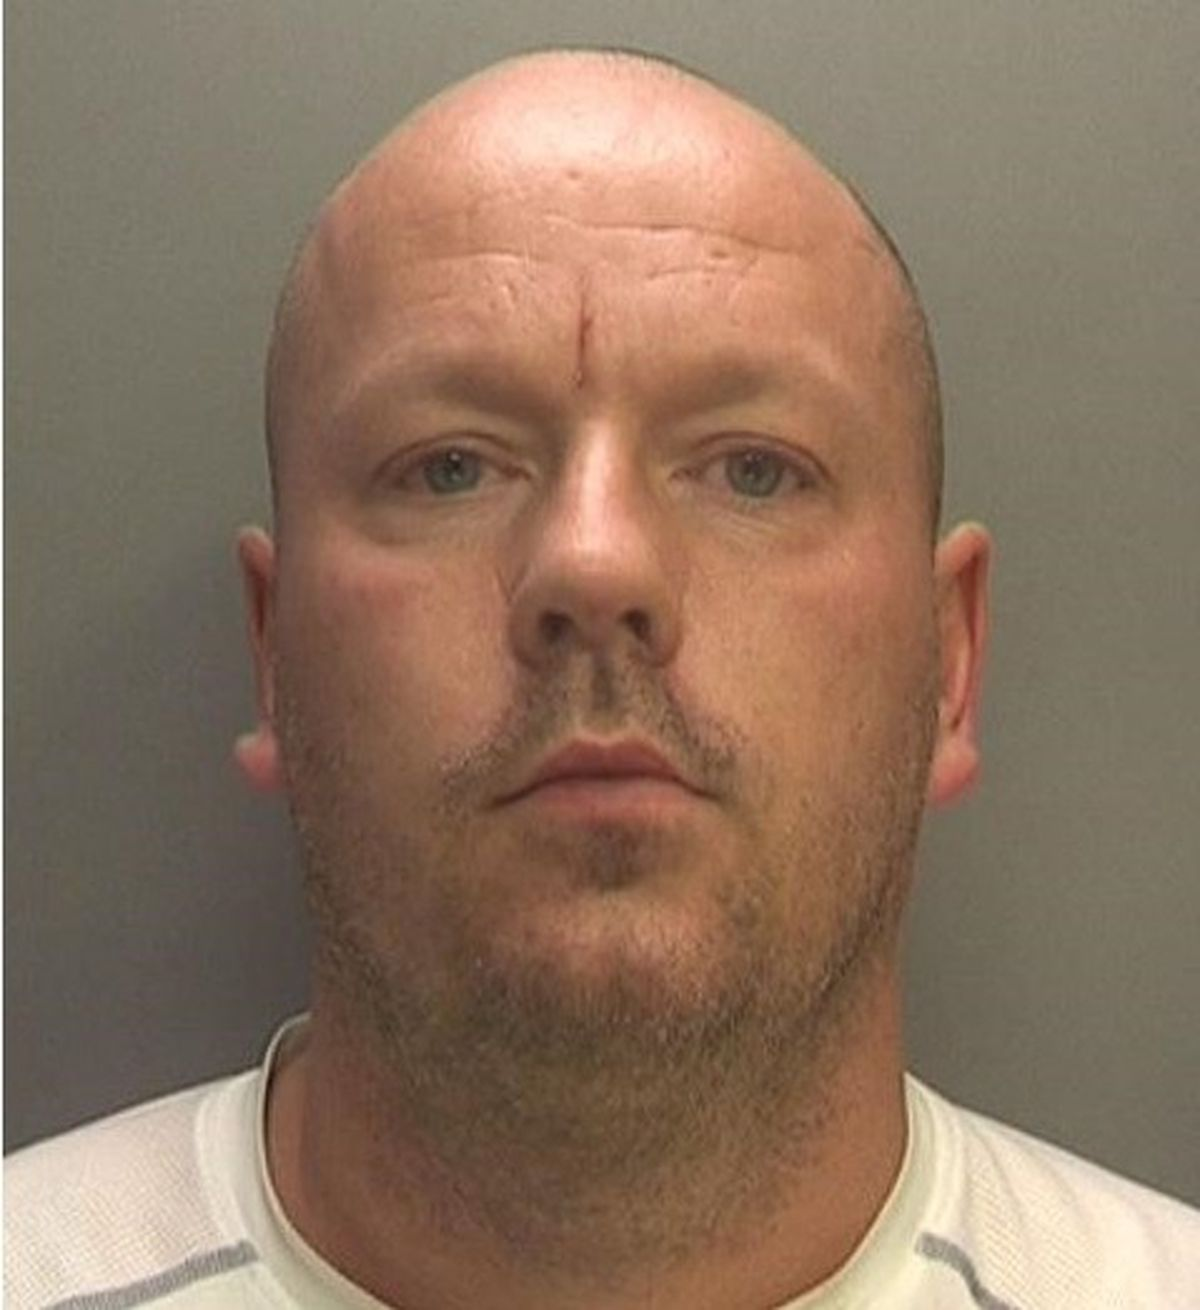 Noel Reilly has previous for similar raids in the West Midlands